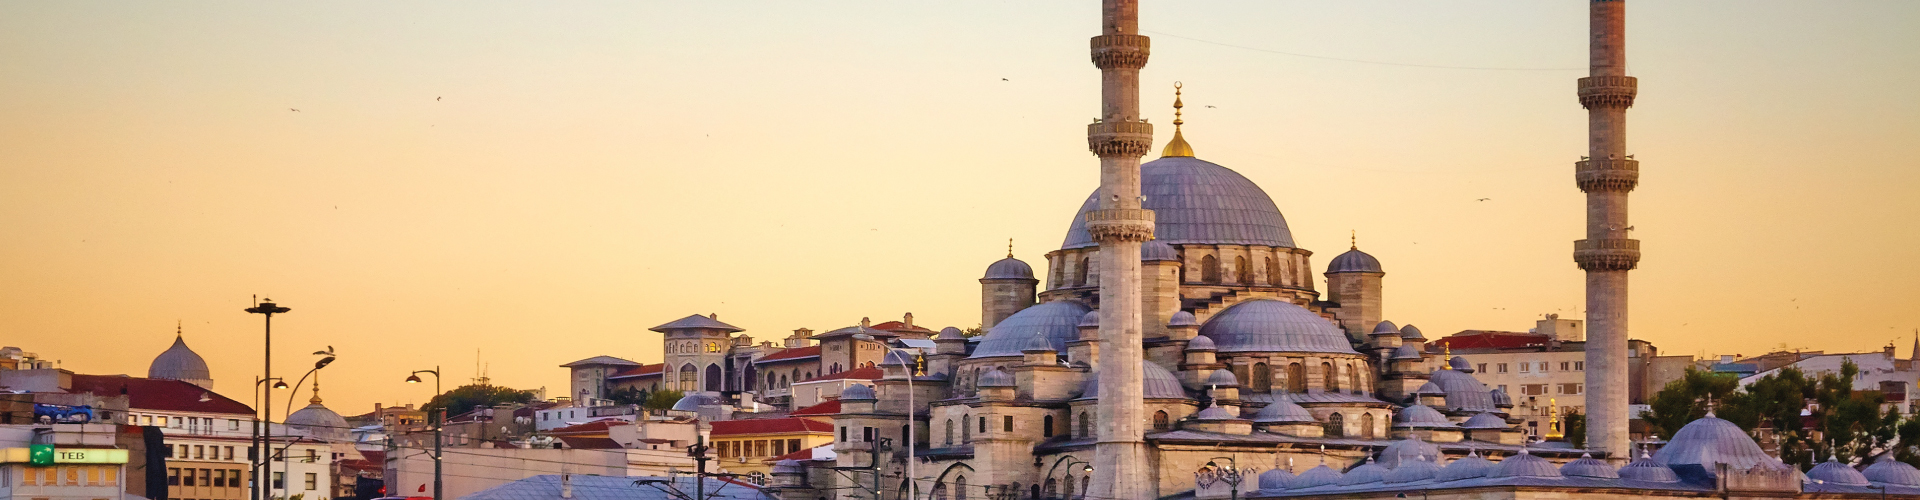 Tour - 4d3n Istanbul City Break - Tkitcblpk049b - R7